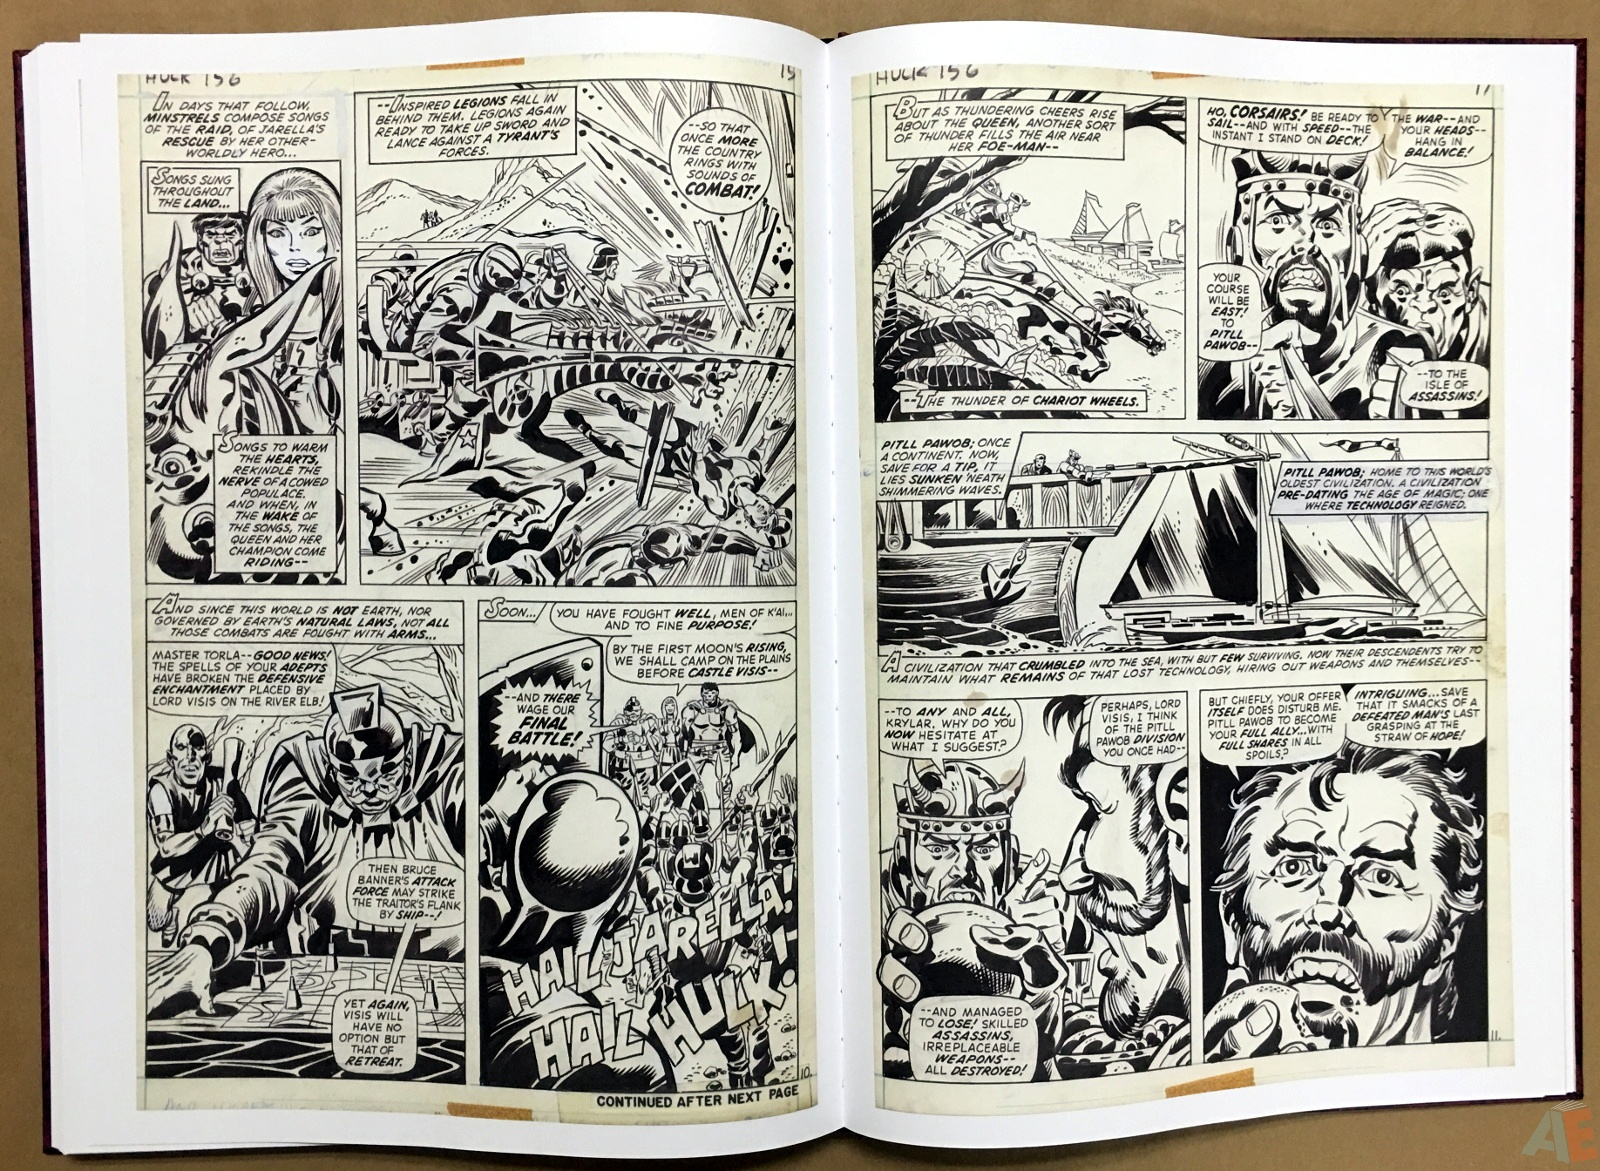 Herb Trimpe's The Incredible Hulk Artist's Edition 38